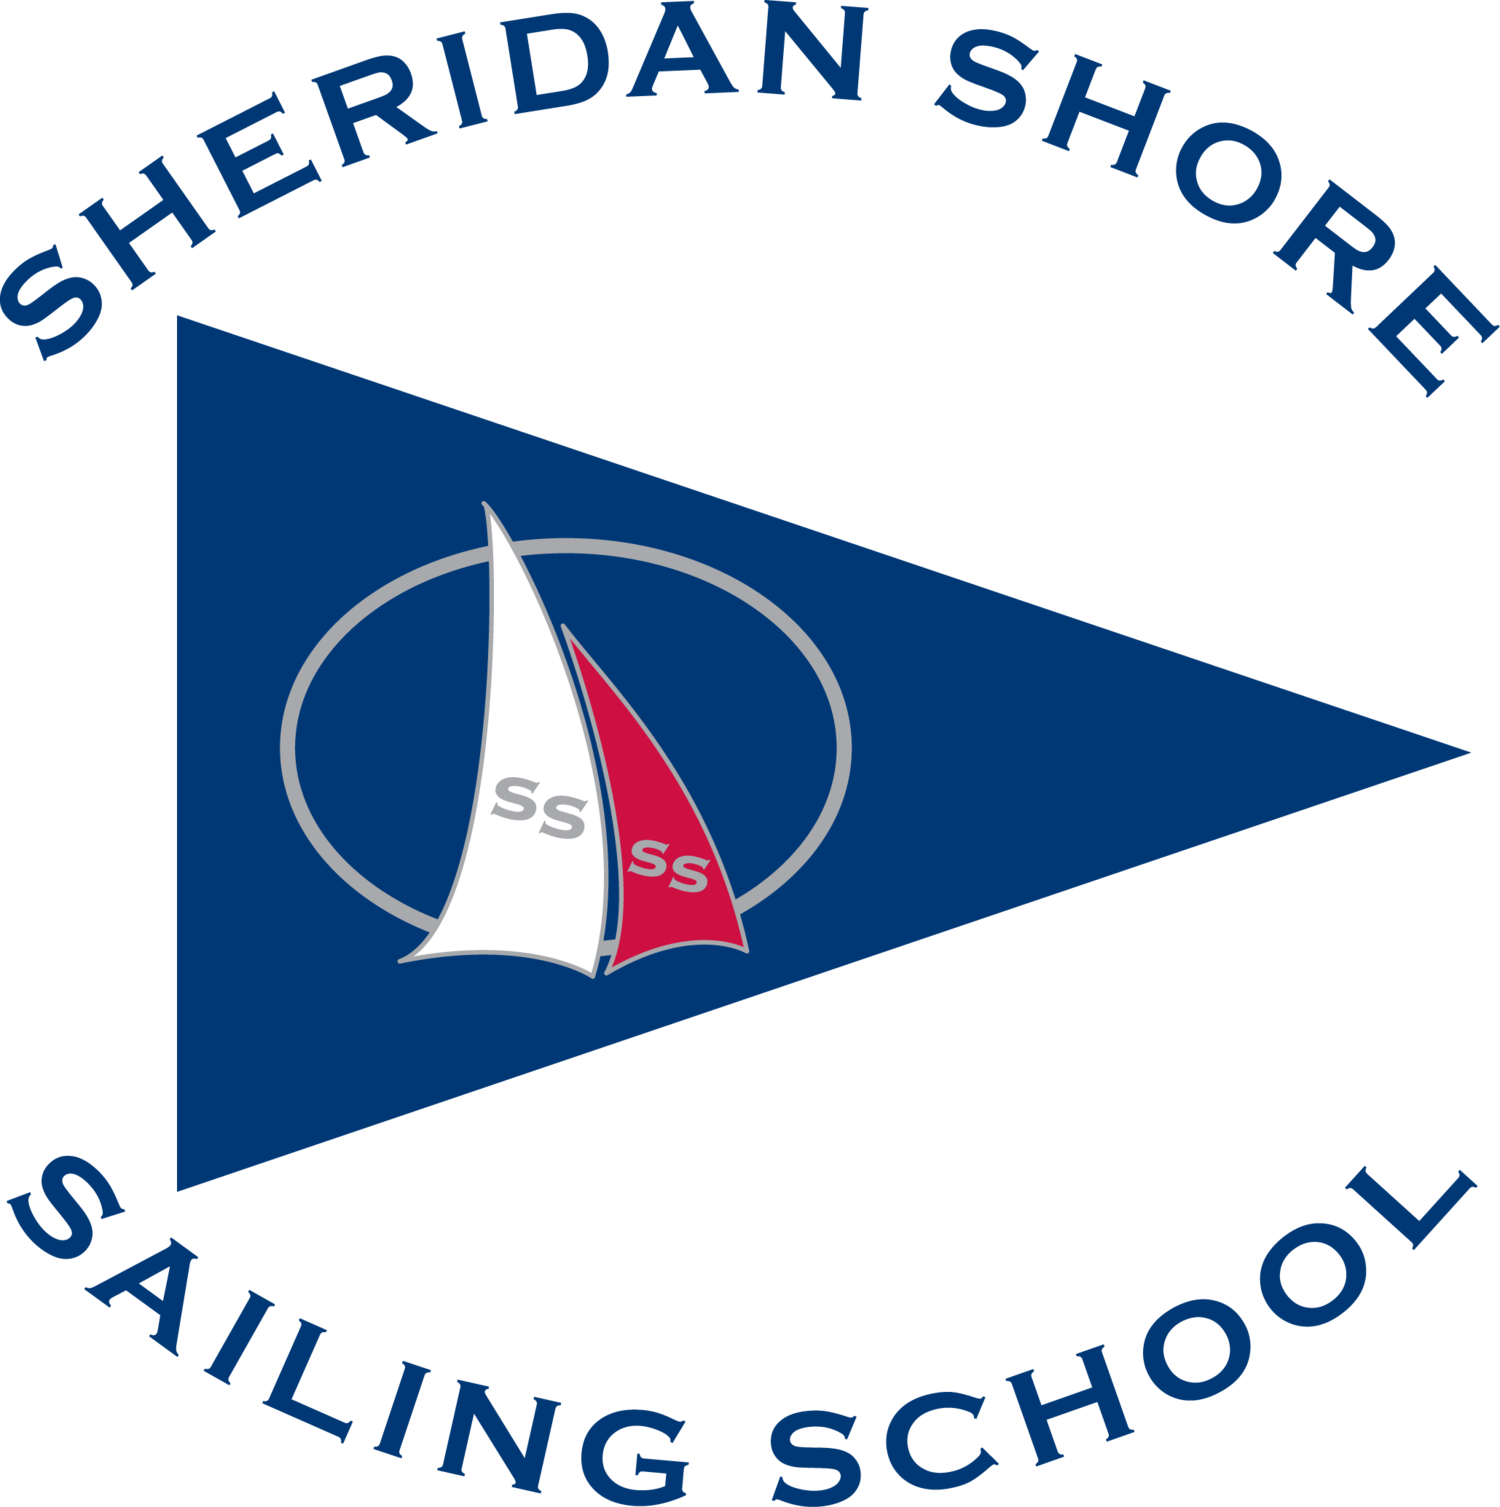 Sheridan Shore Sailing School